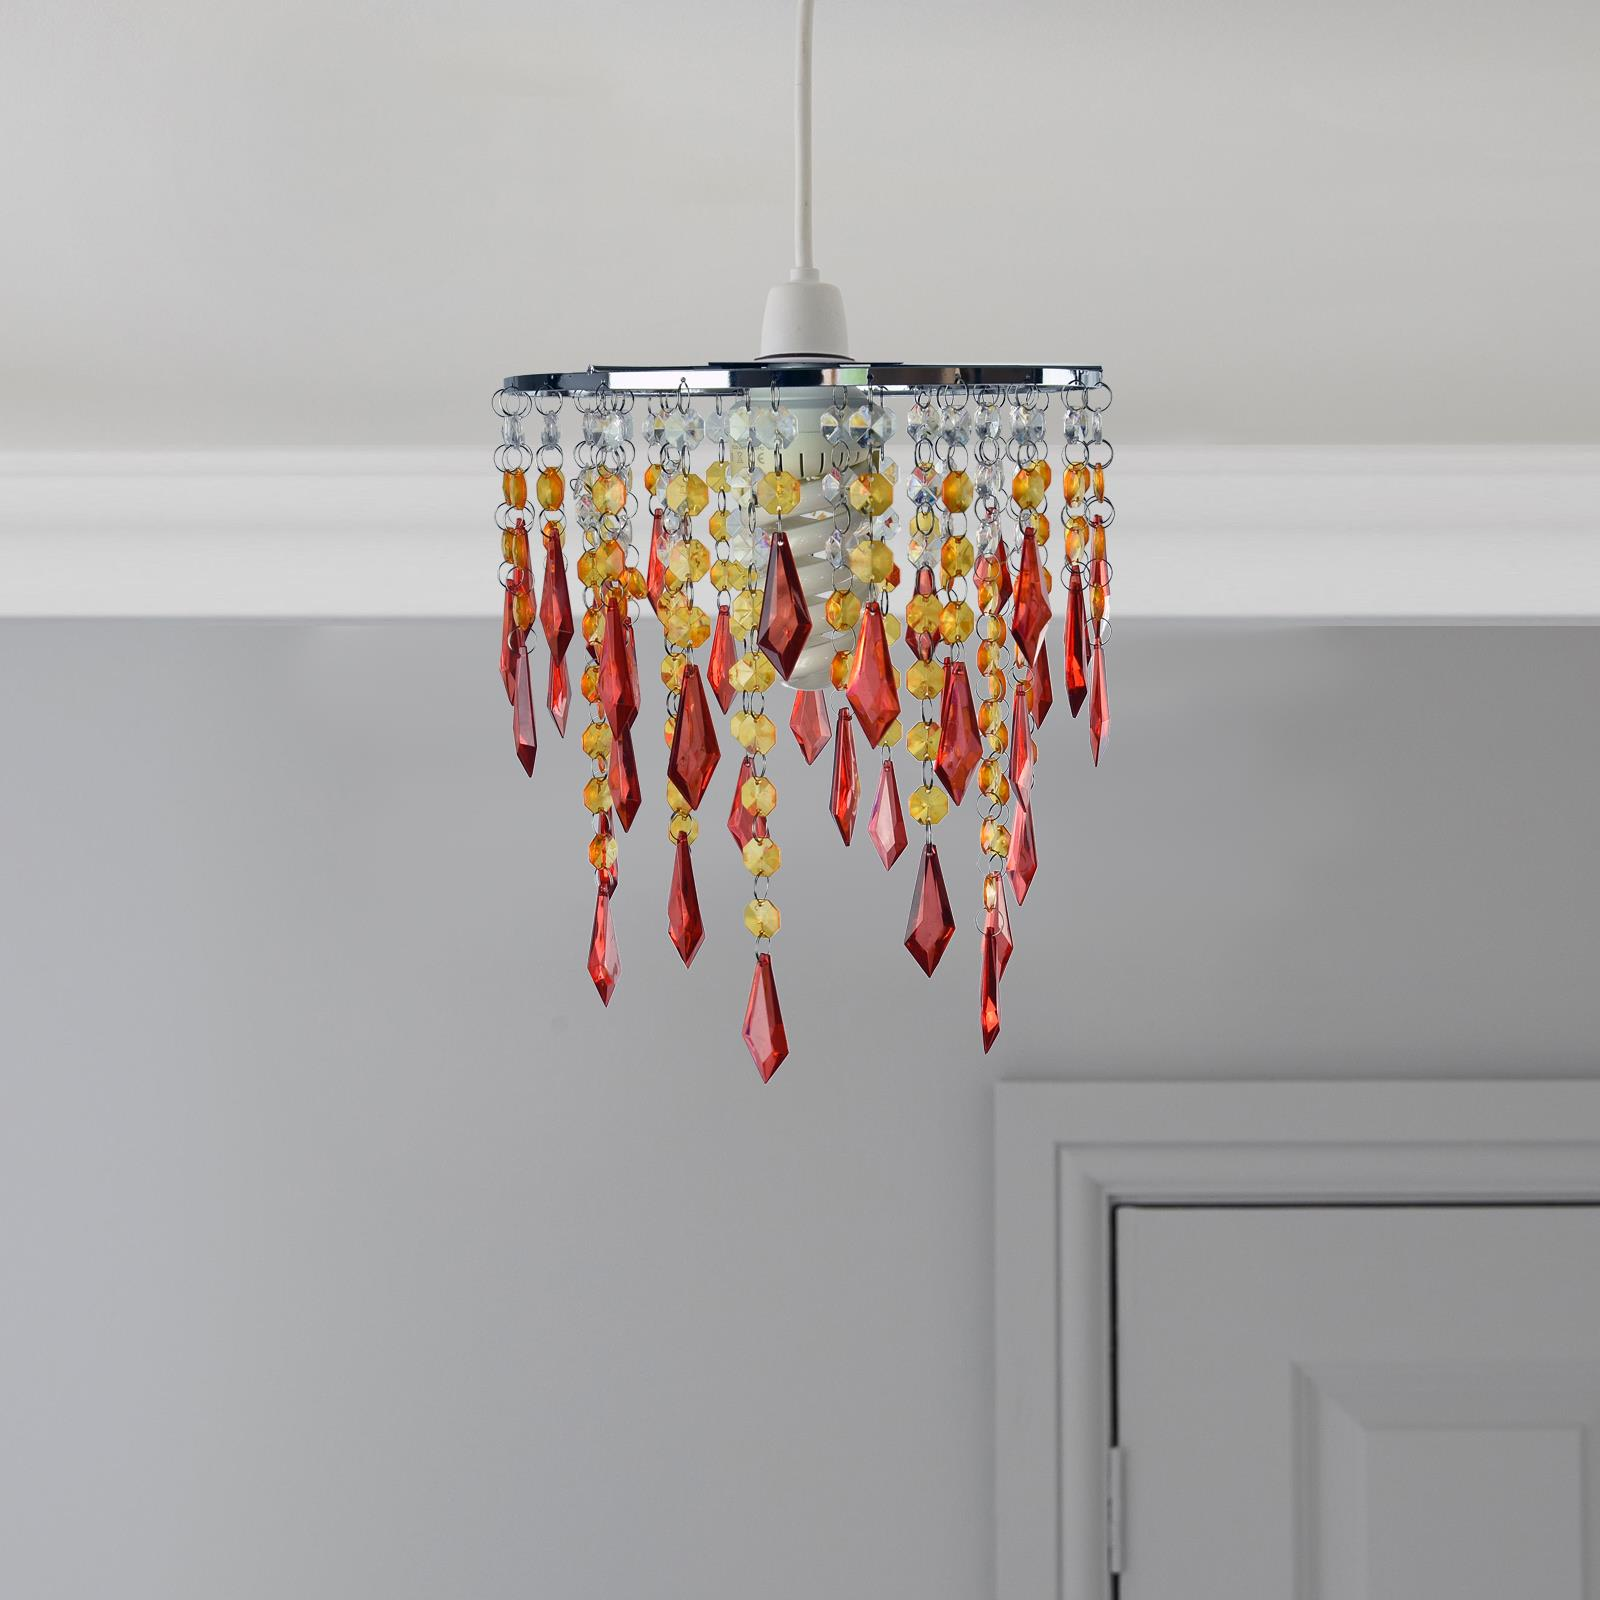 Modern-Chandelier-Style-Ceiling-Light-Lamp-Shade-Drop-Pendant-Acrylic-Crystal thumbnail 44